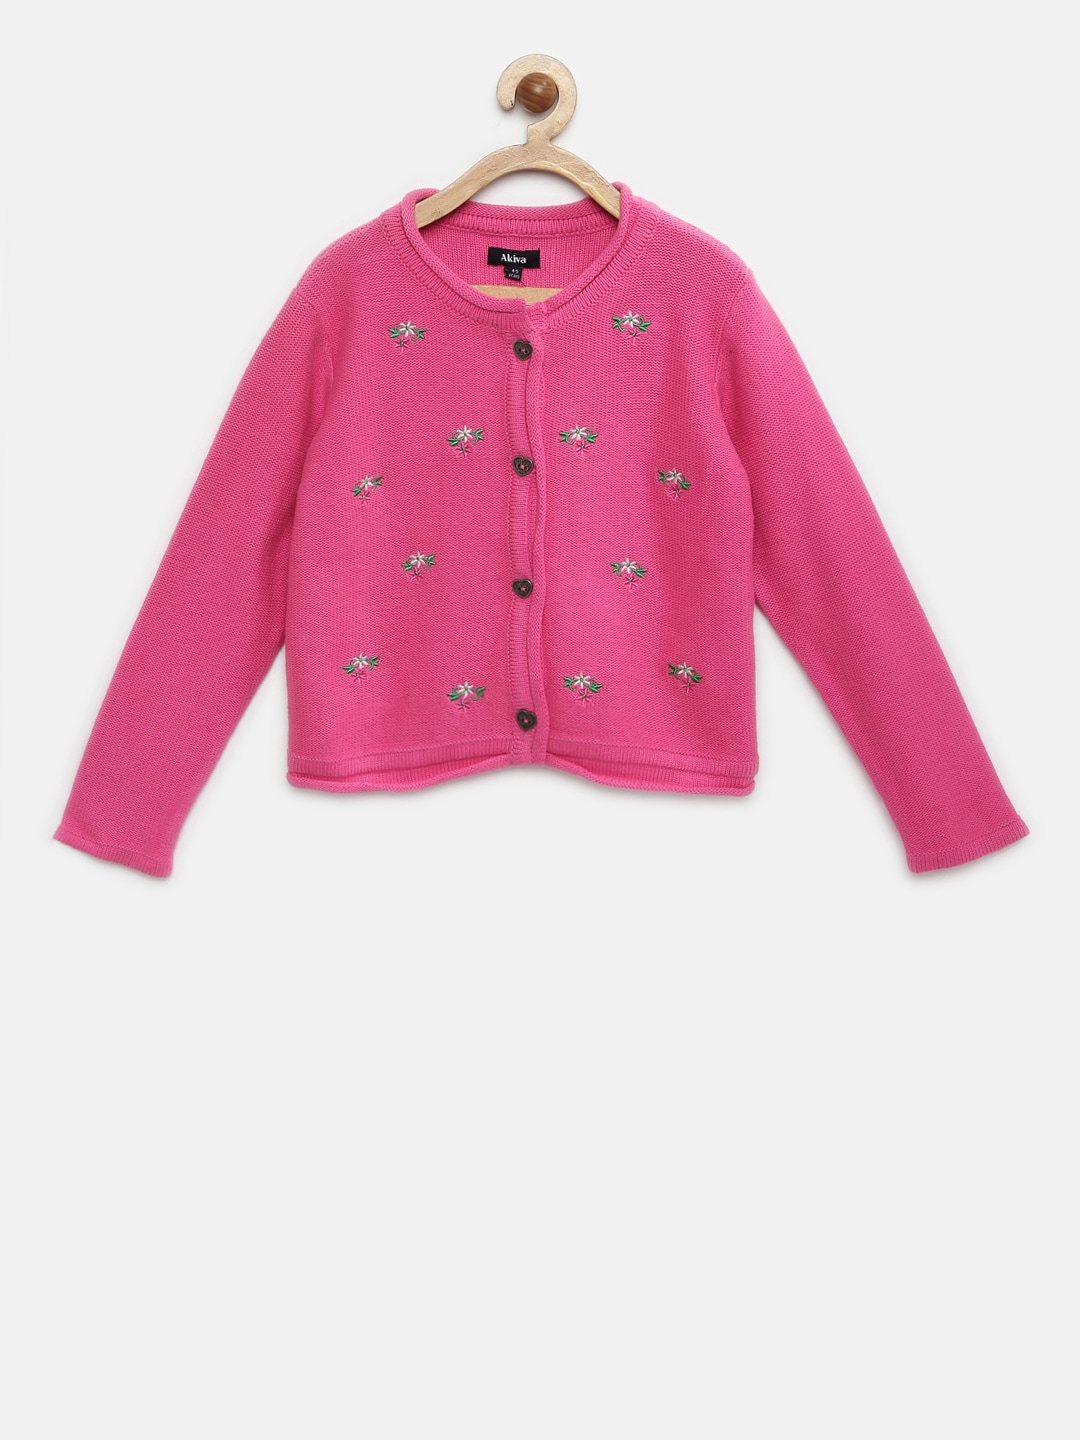 8d7038fcee48 Girl s Sweaters - Buy Sweaters for Girls Online in India